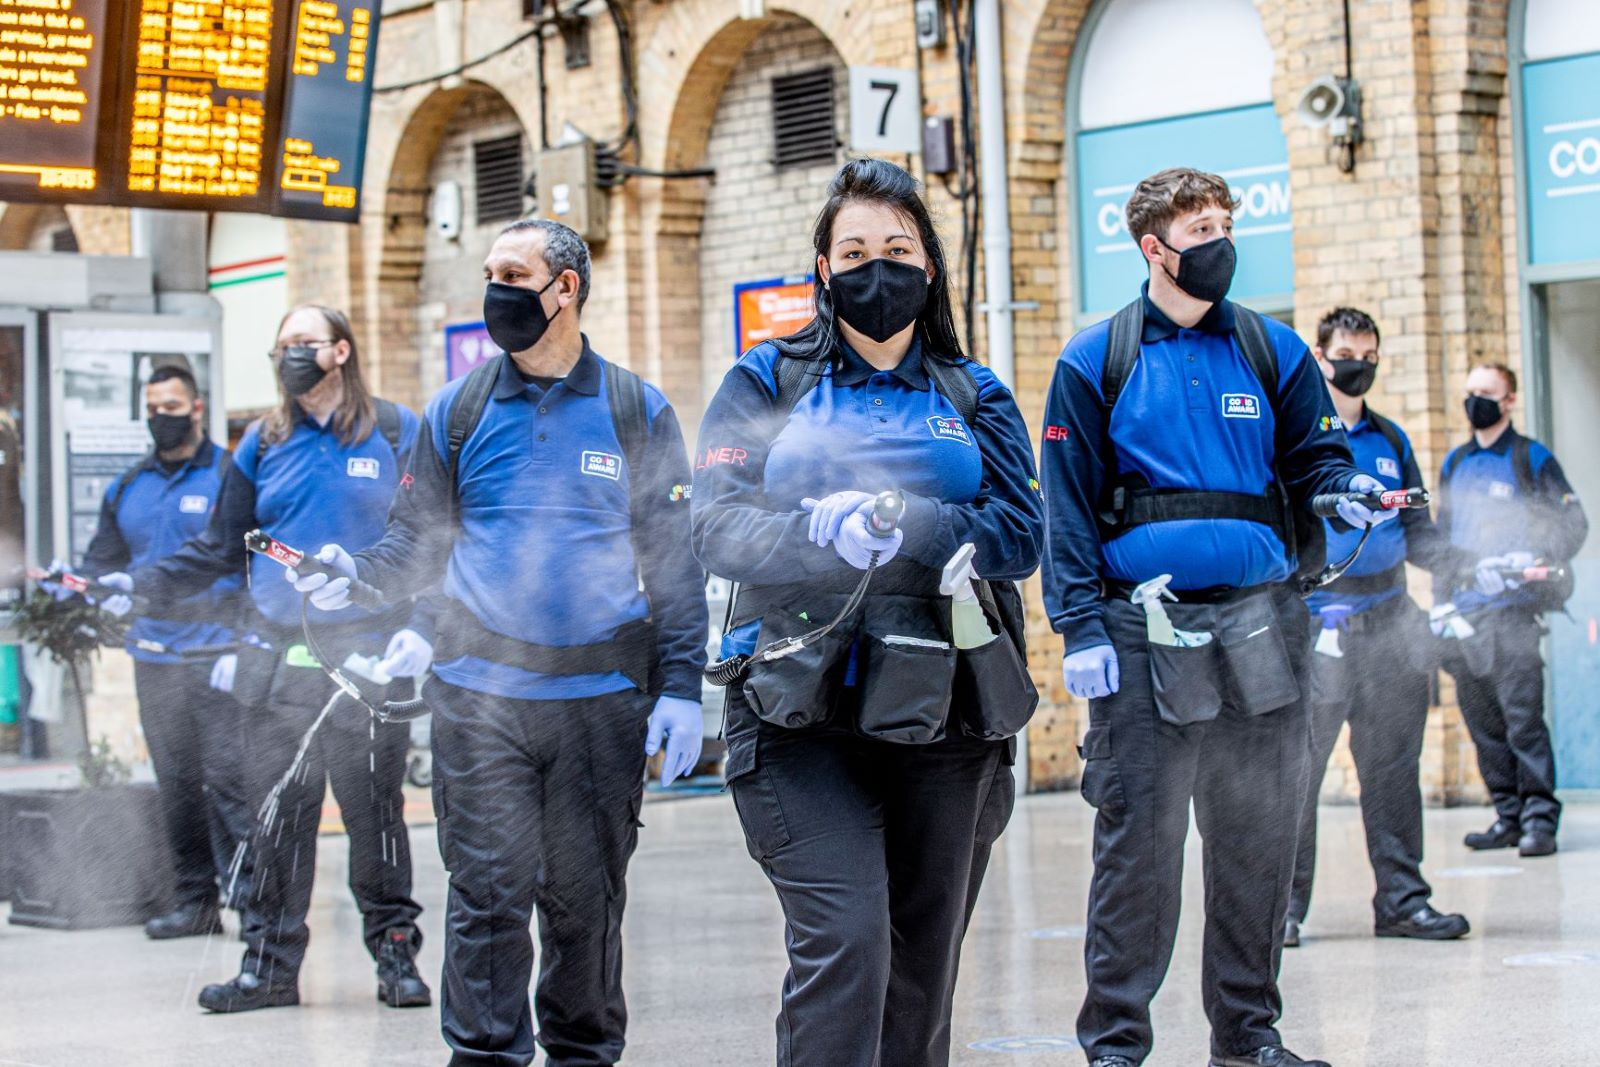 New 'Stormtroopers' Take LNER's Army Of Cleaners To More Than 330 As Record Levels Of Cleaning Continue